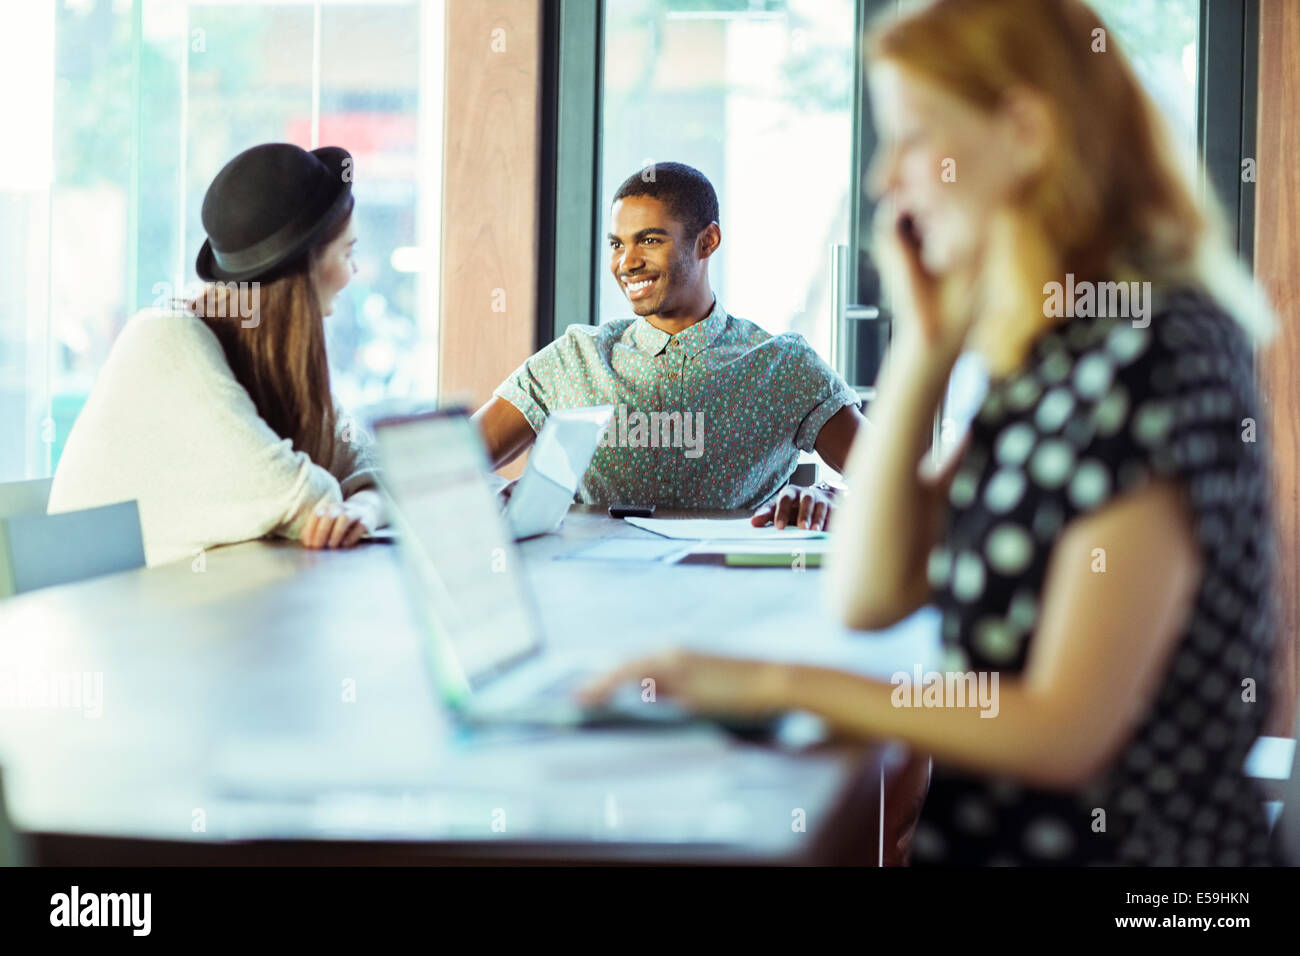 People working at conference table in office - Stock Image